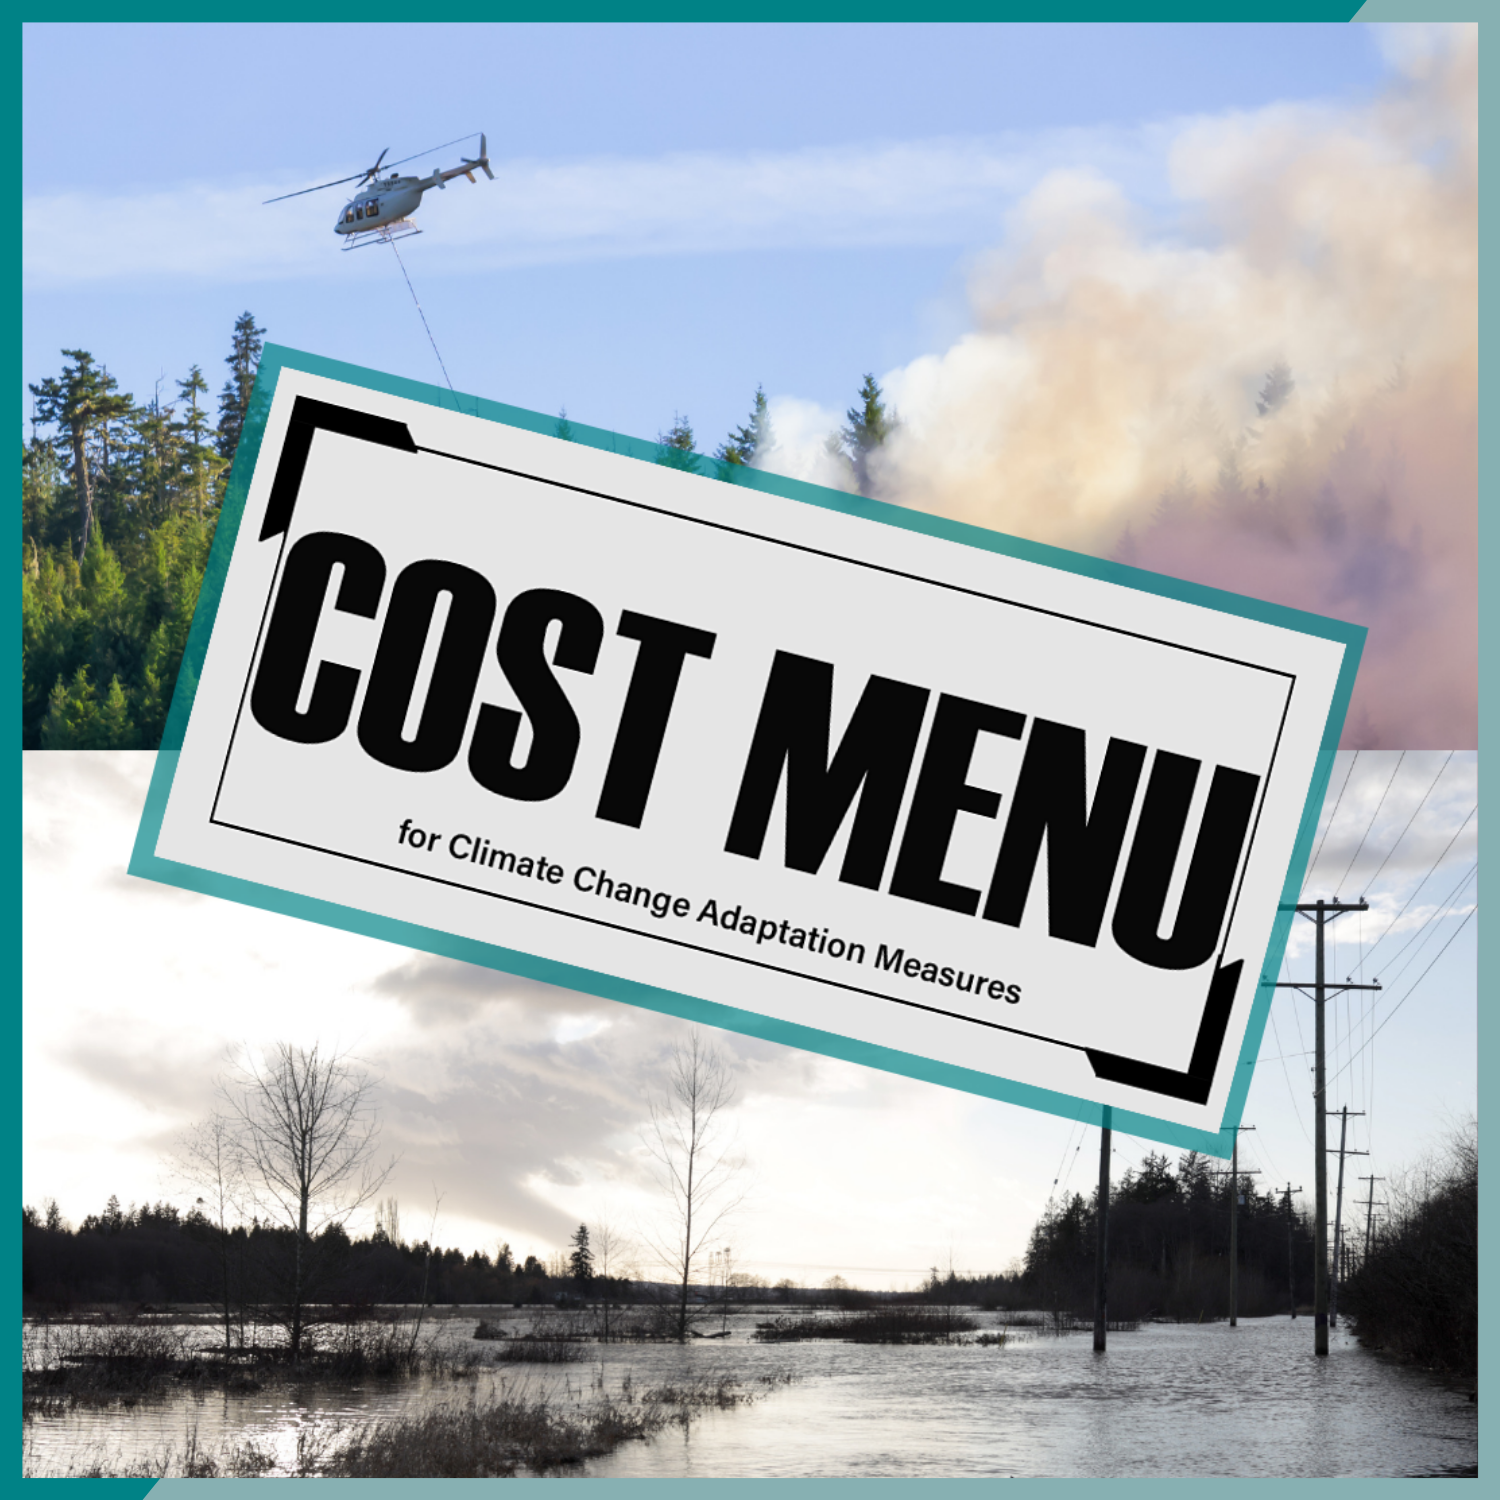 Wildfire and flood photos with a grey banner reads: COST MENU